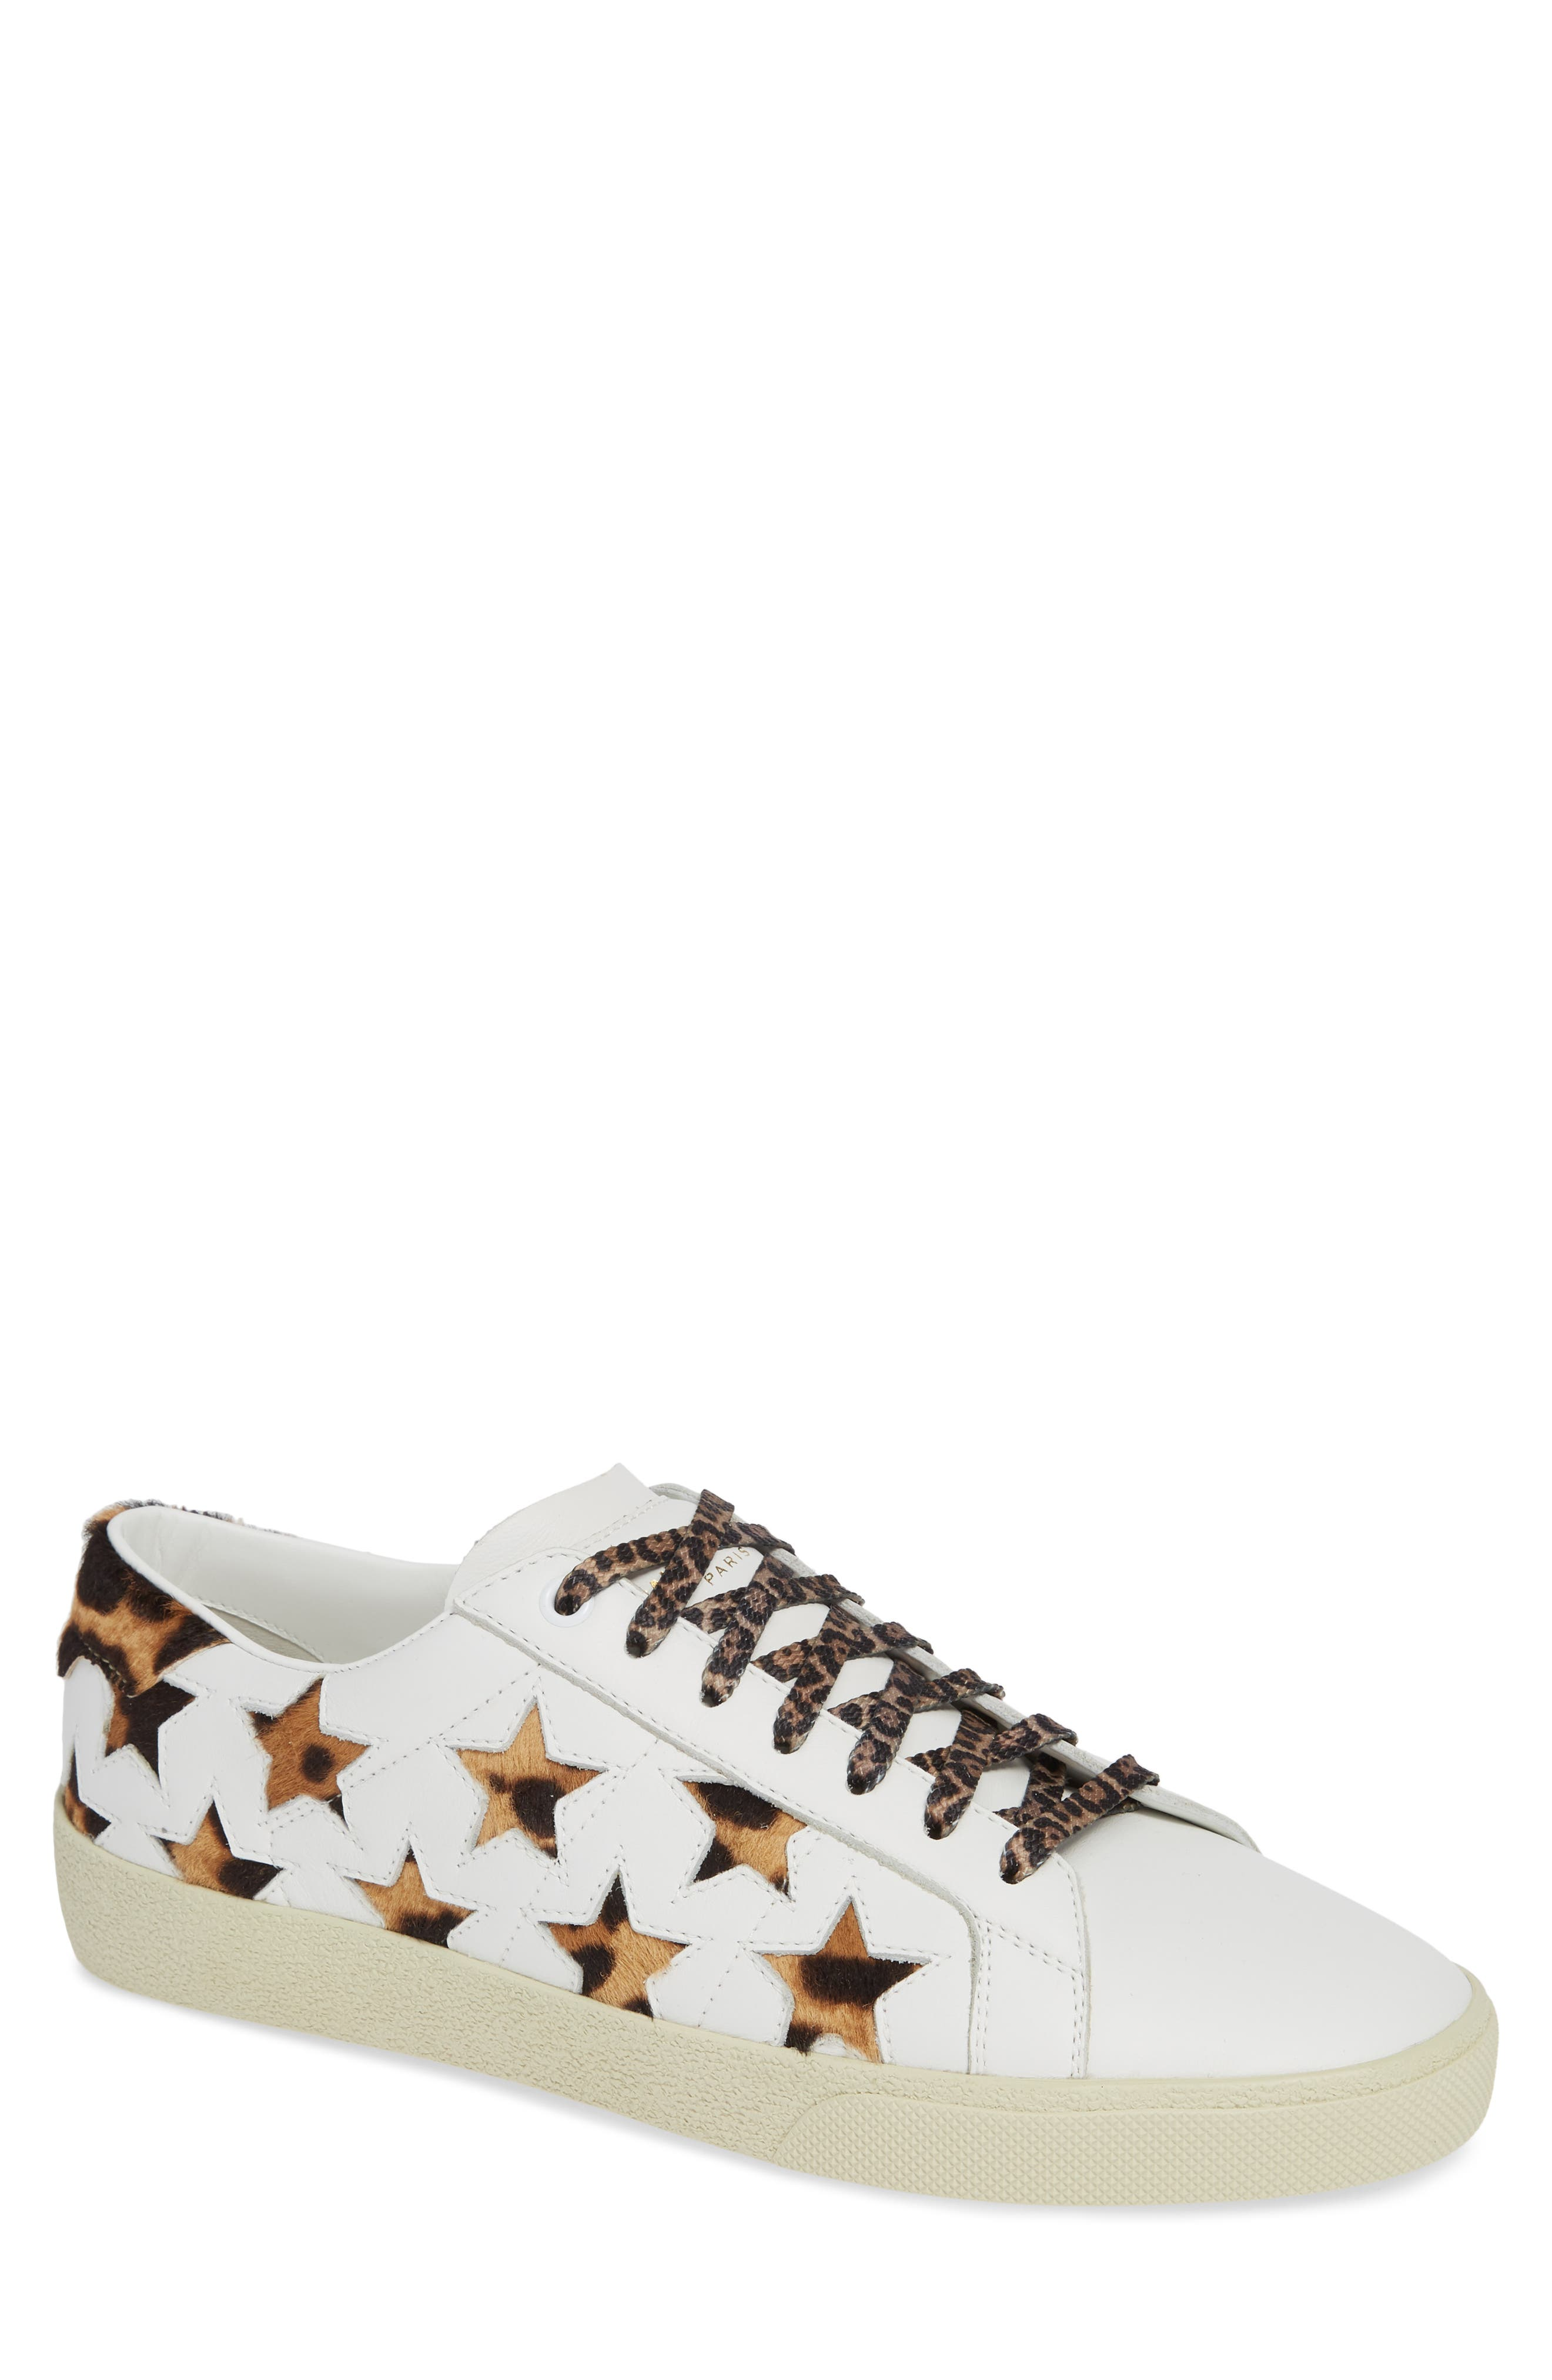 SL06 Genuine Calf Hair Sneaker,                         Main,                         color, BLANC OPTIQUE/ CHAD